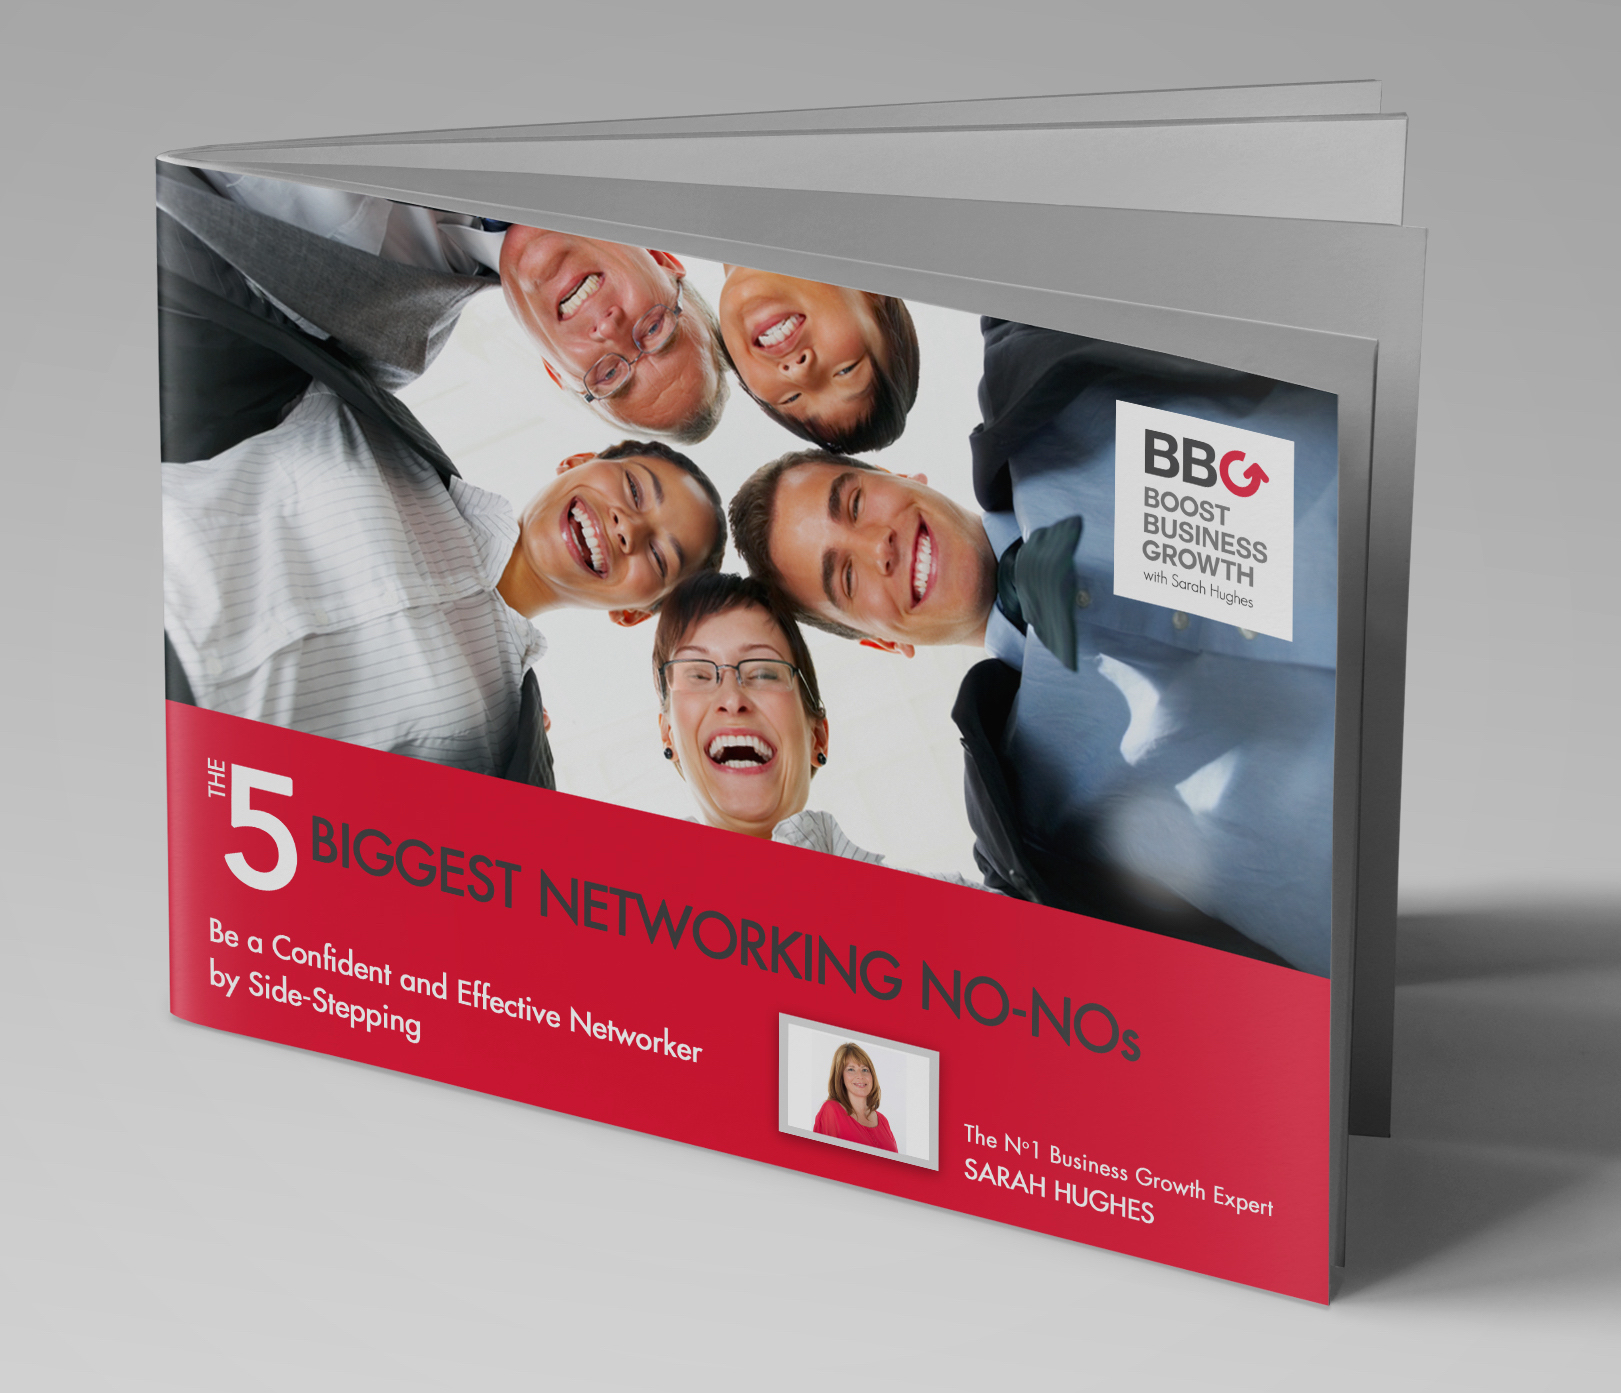 The 5 Biggest Networking NO-NOs